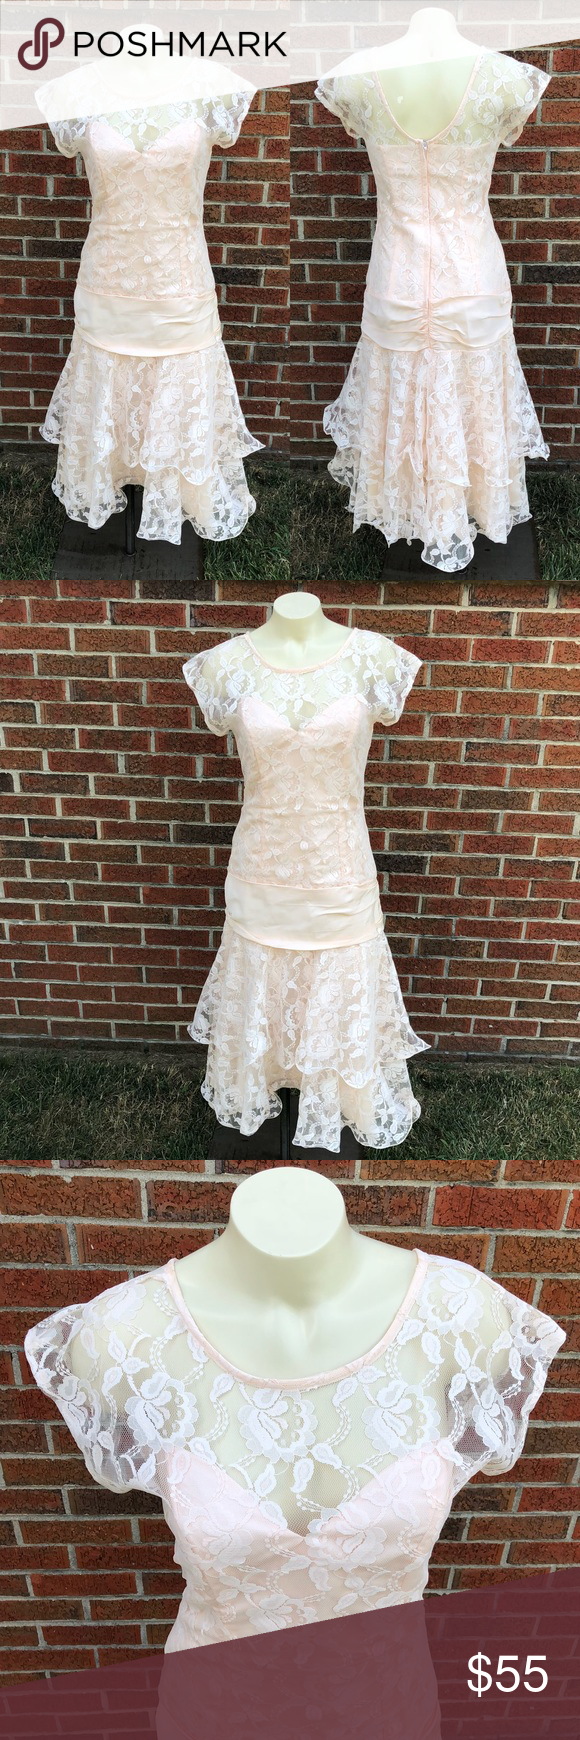 Jcpenney vintage lace prom dress light peach pink